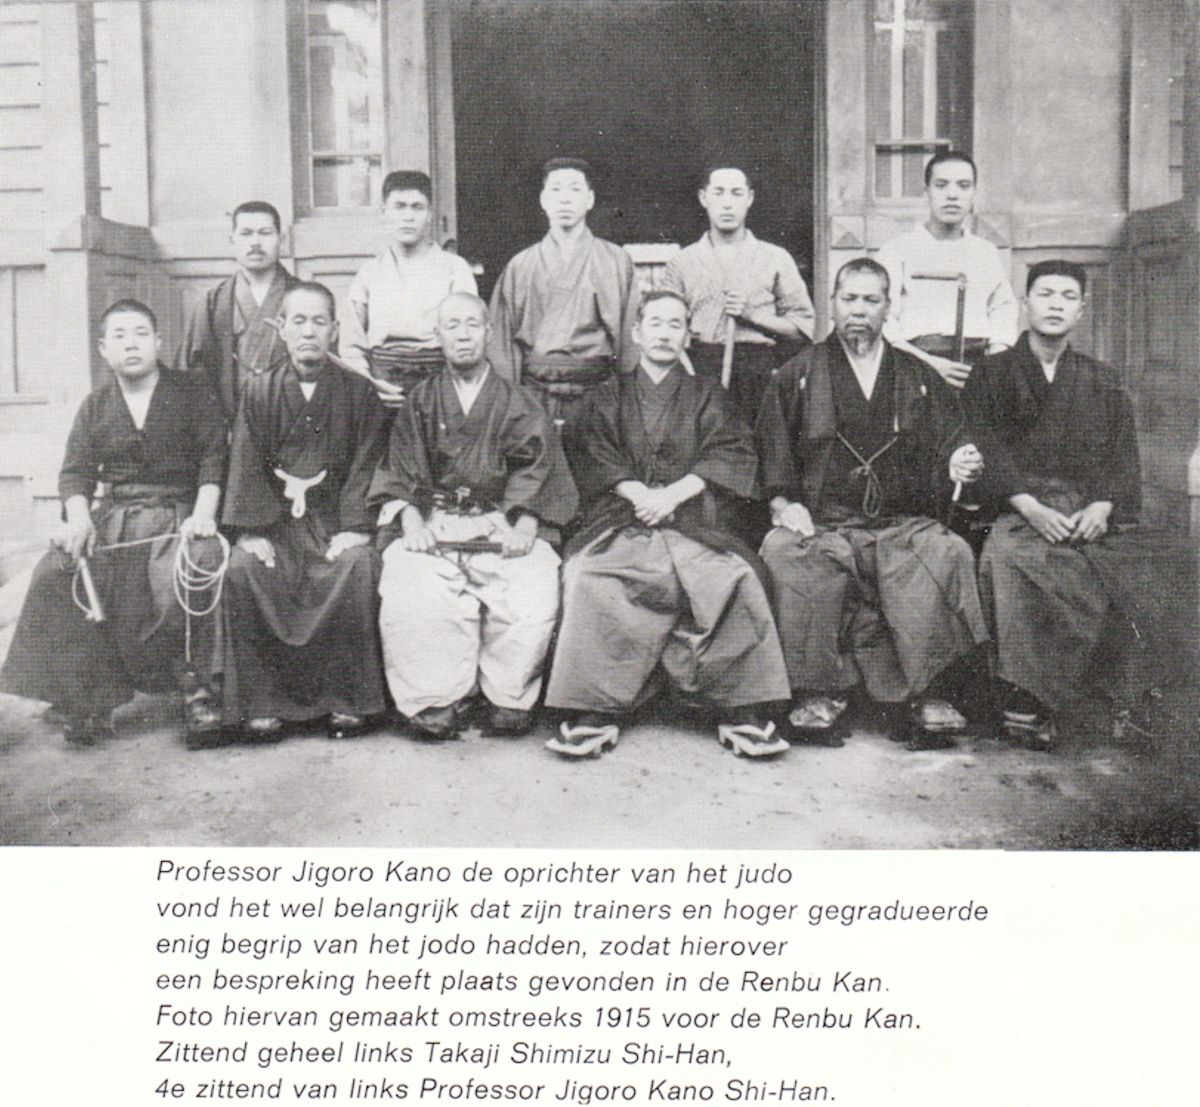 KanomeetingJodo1915.jpg